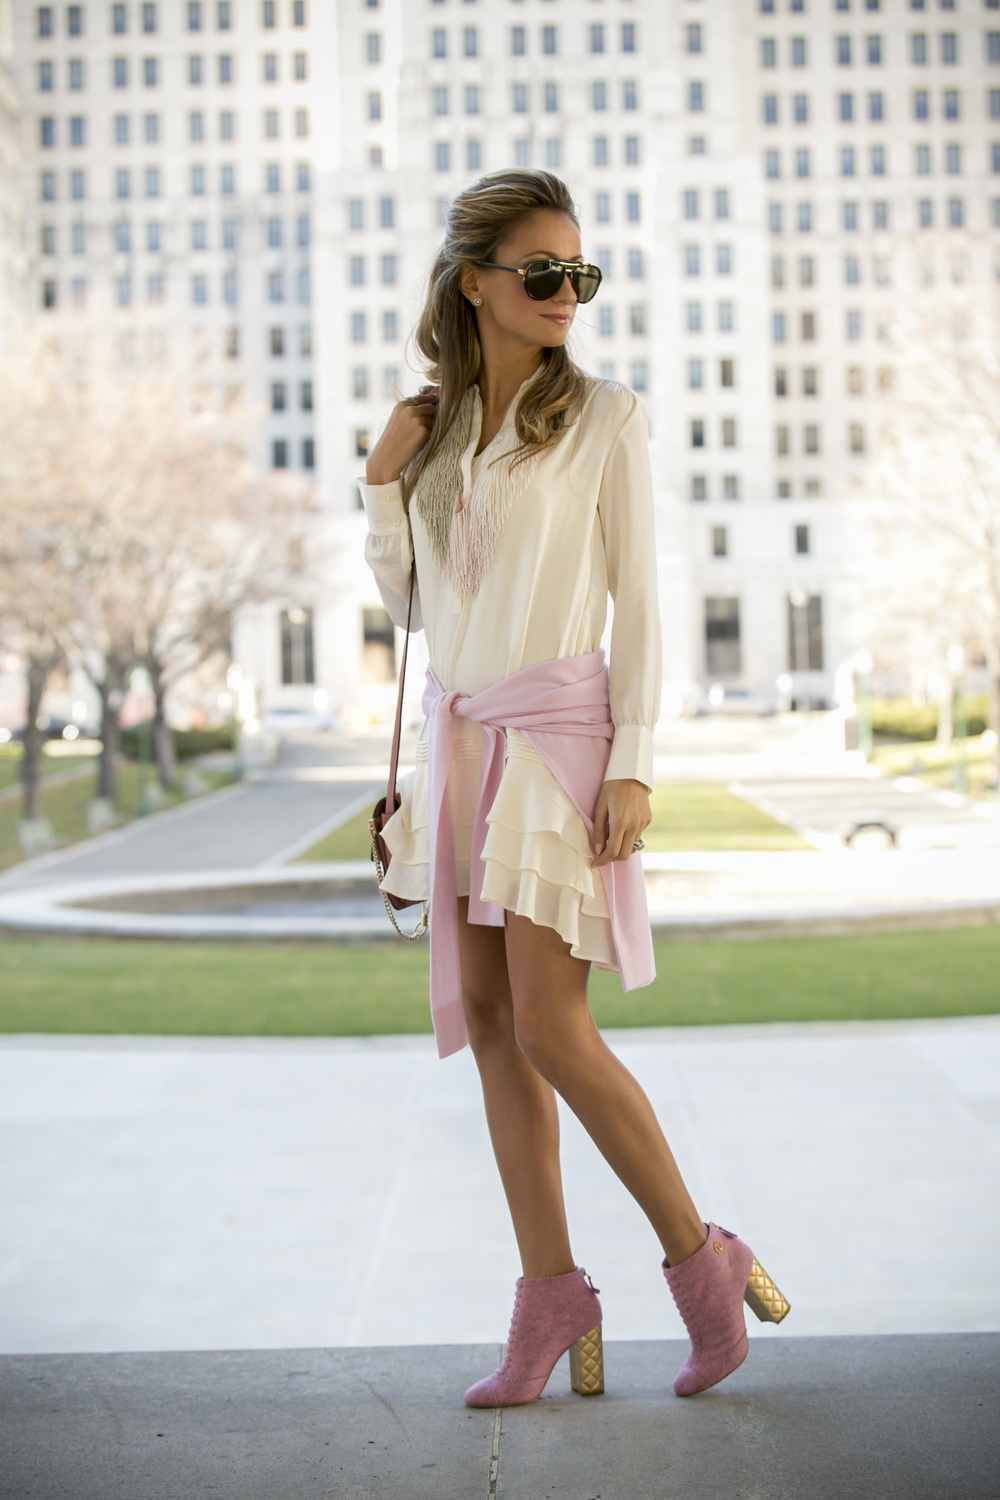 Banana Republic dress and Chanel booties